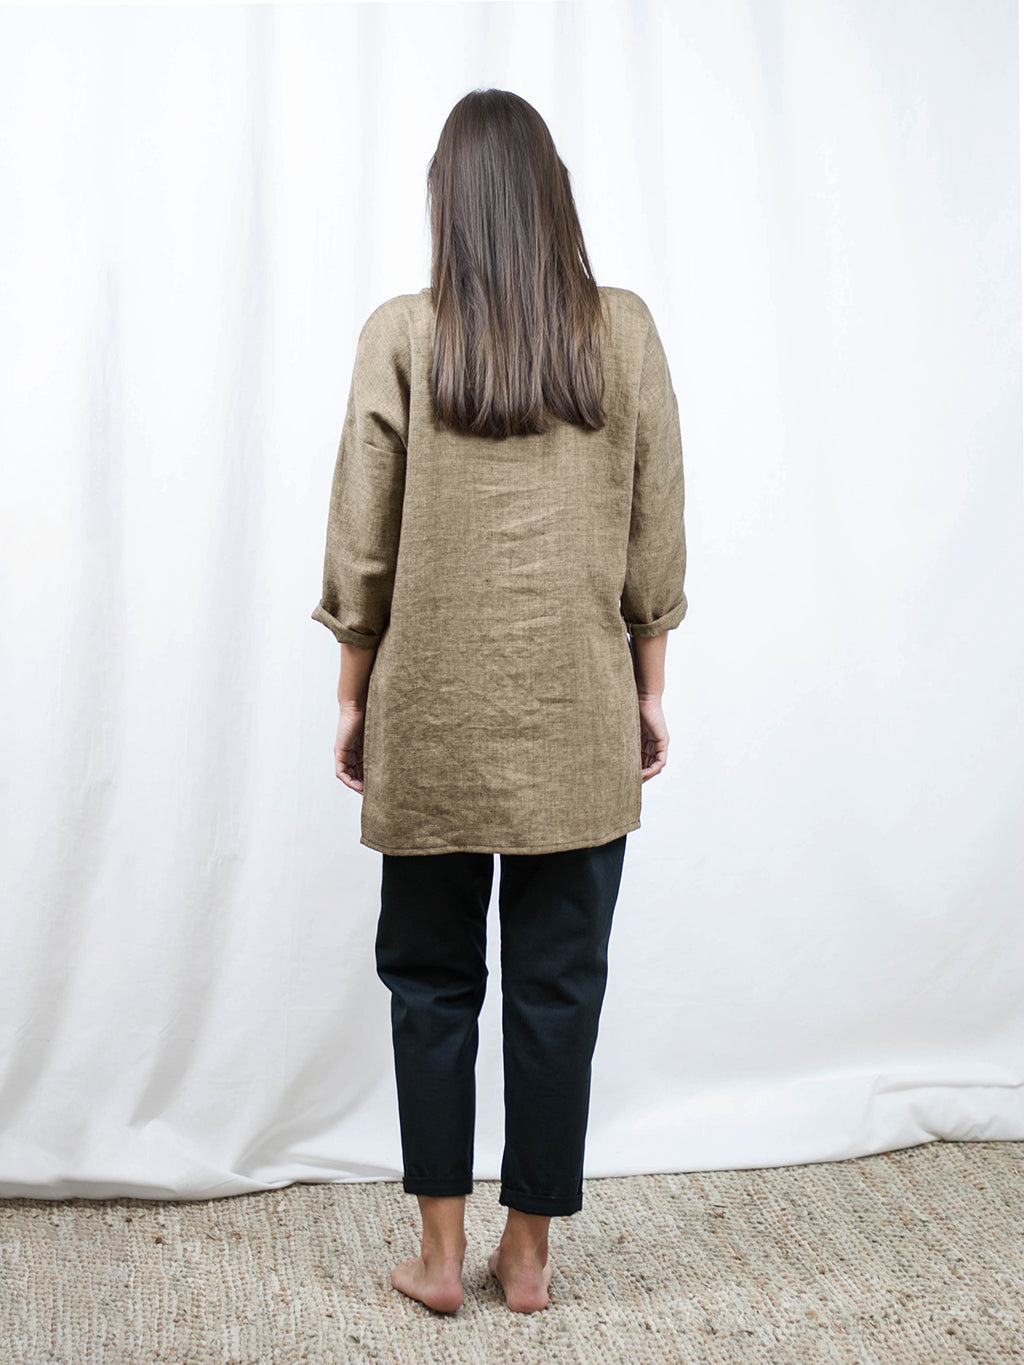 Tunic with pocket | linen/wool. Made in Slovenia.